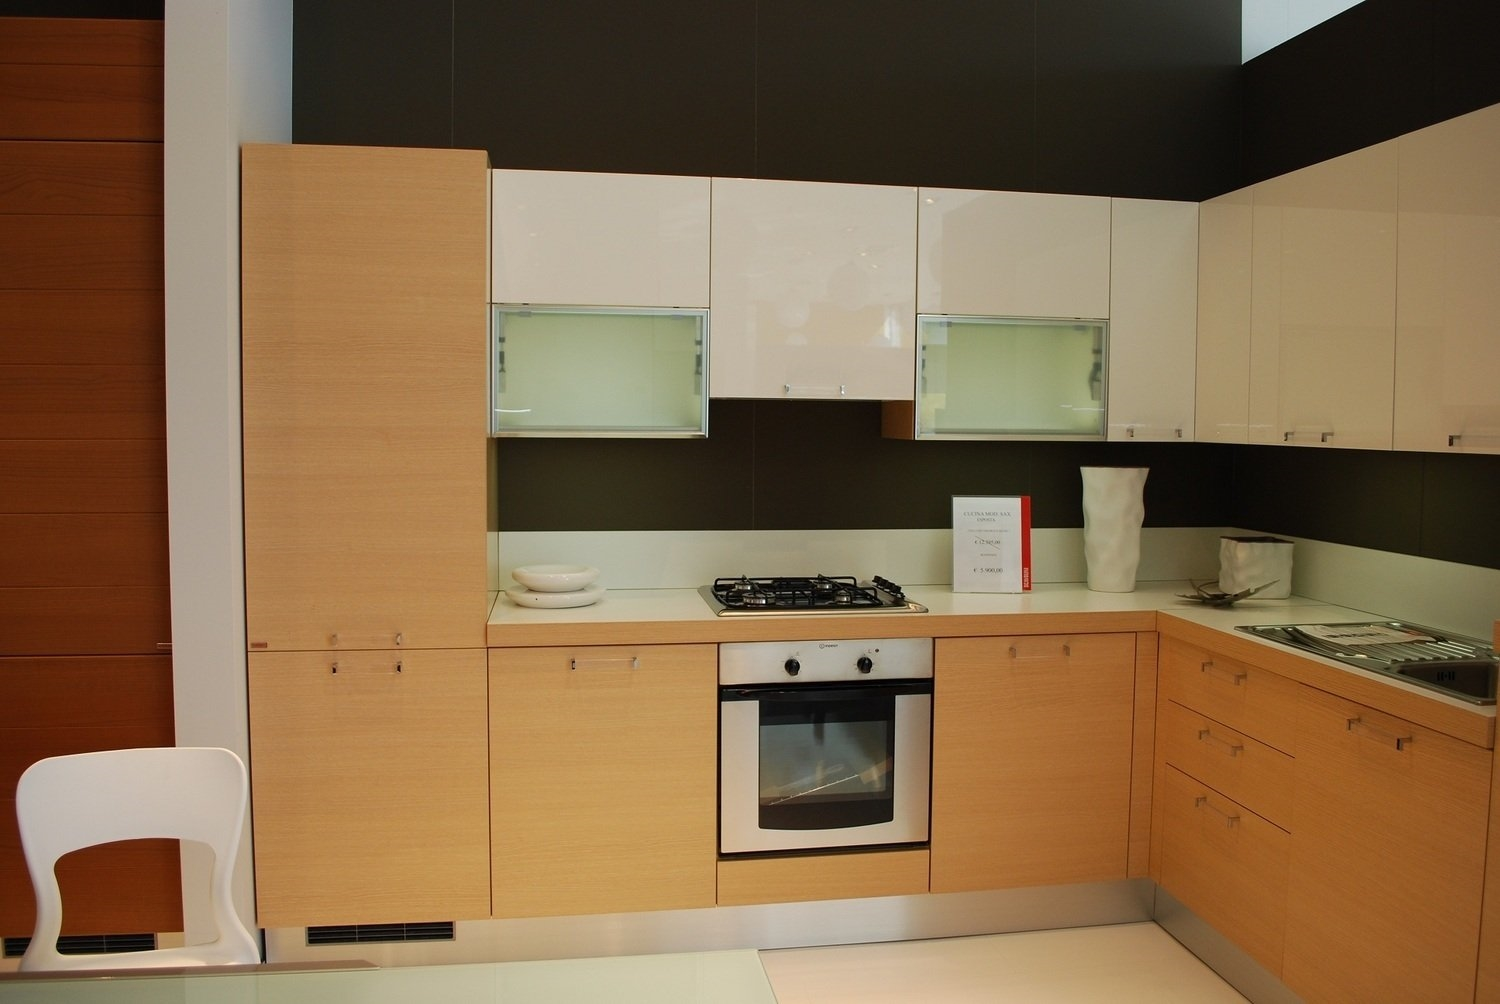 Cucine Angolari Piccole. Good Give Star For Photos Above With ...